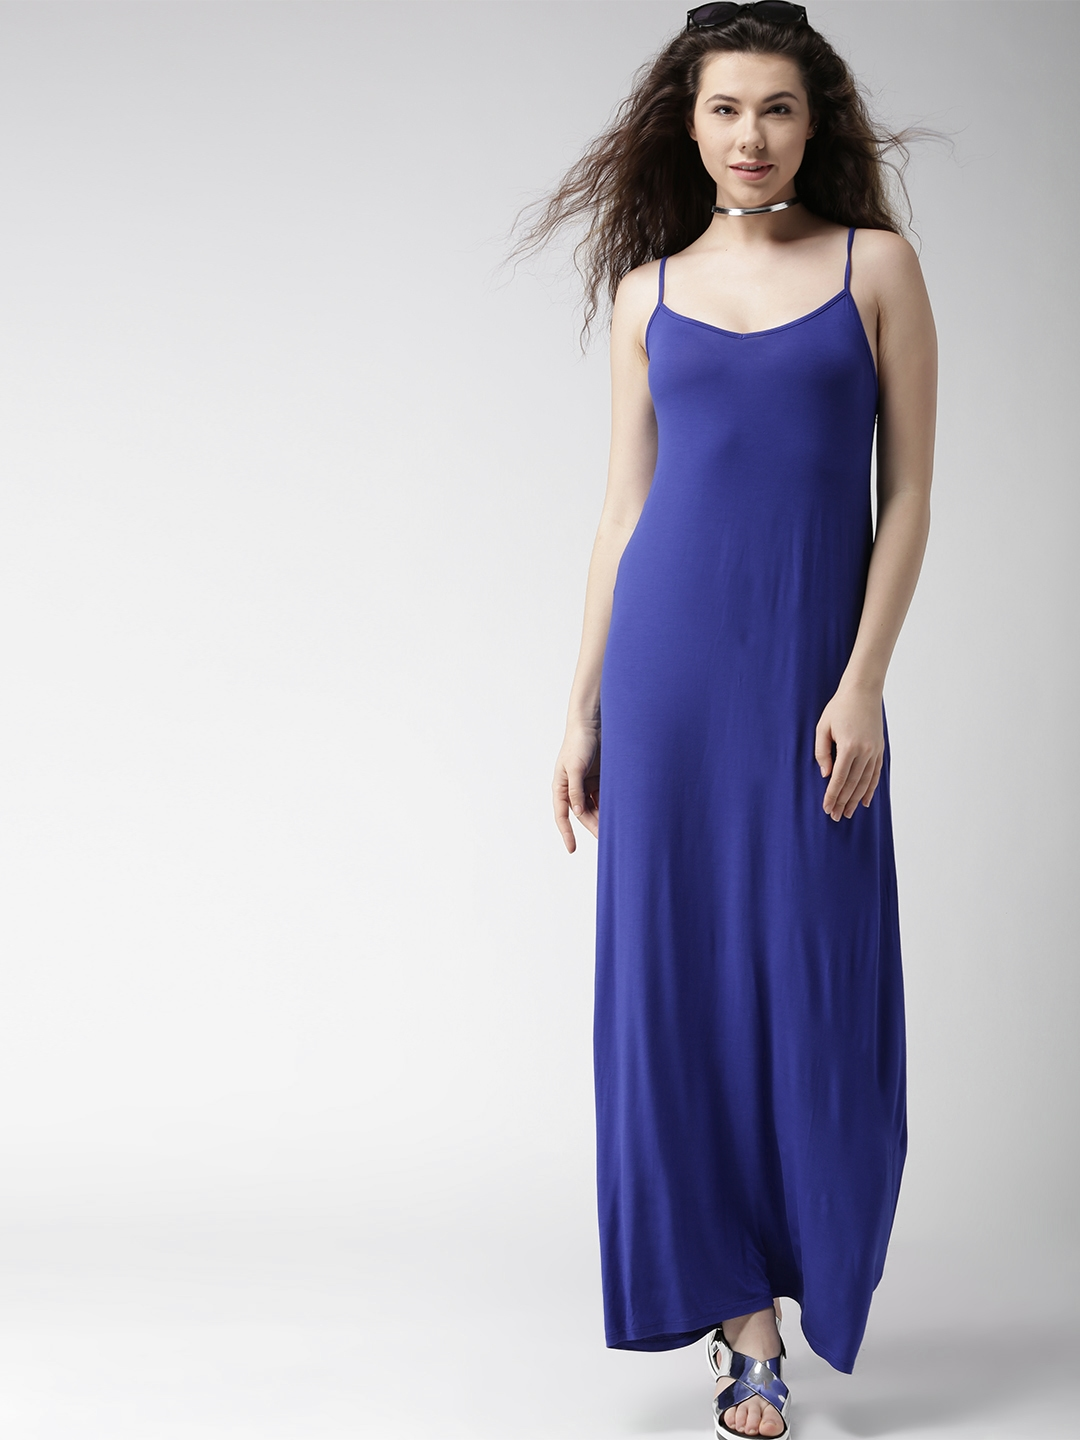 deca65d8d7 Buy FOREVER 21 Women Blue Solid Maxi Dress With Cut Outs - Dresses ...